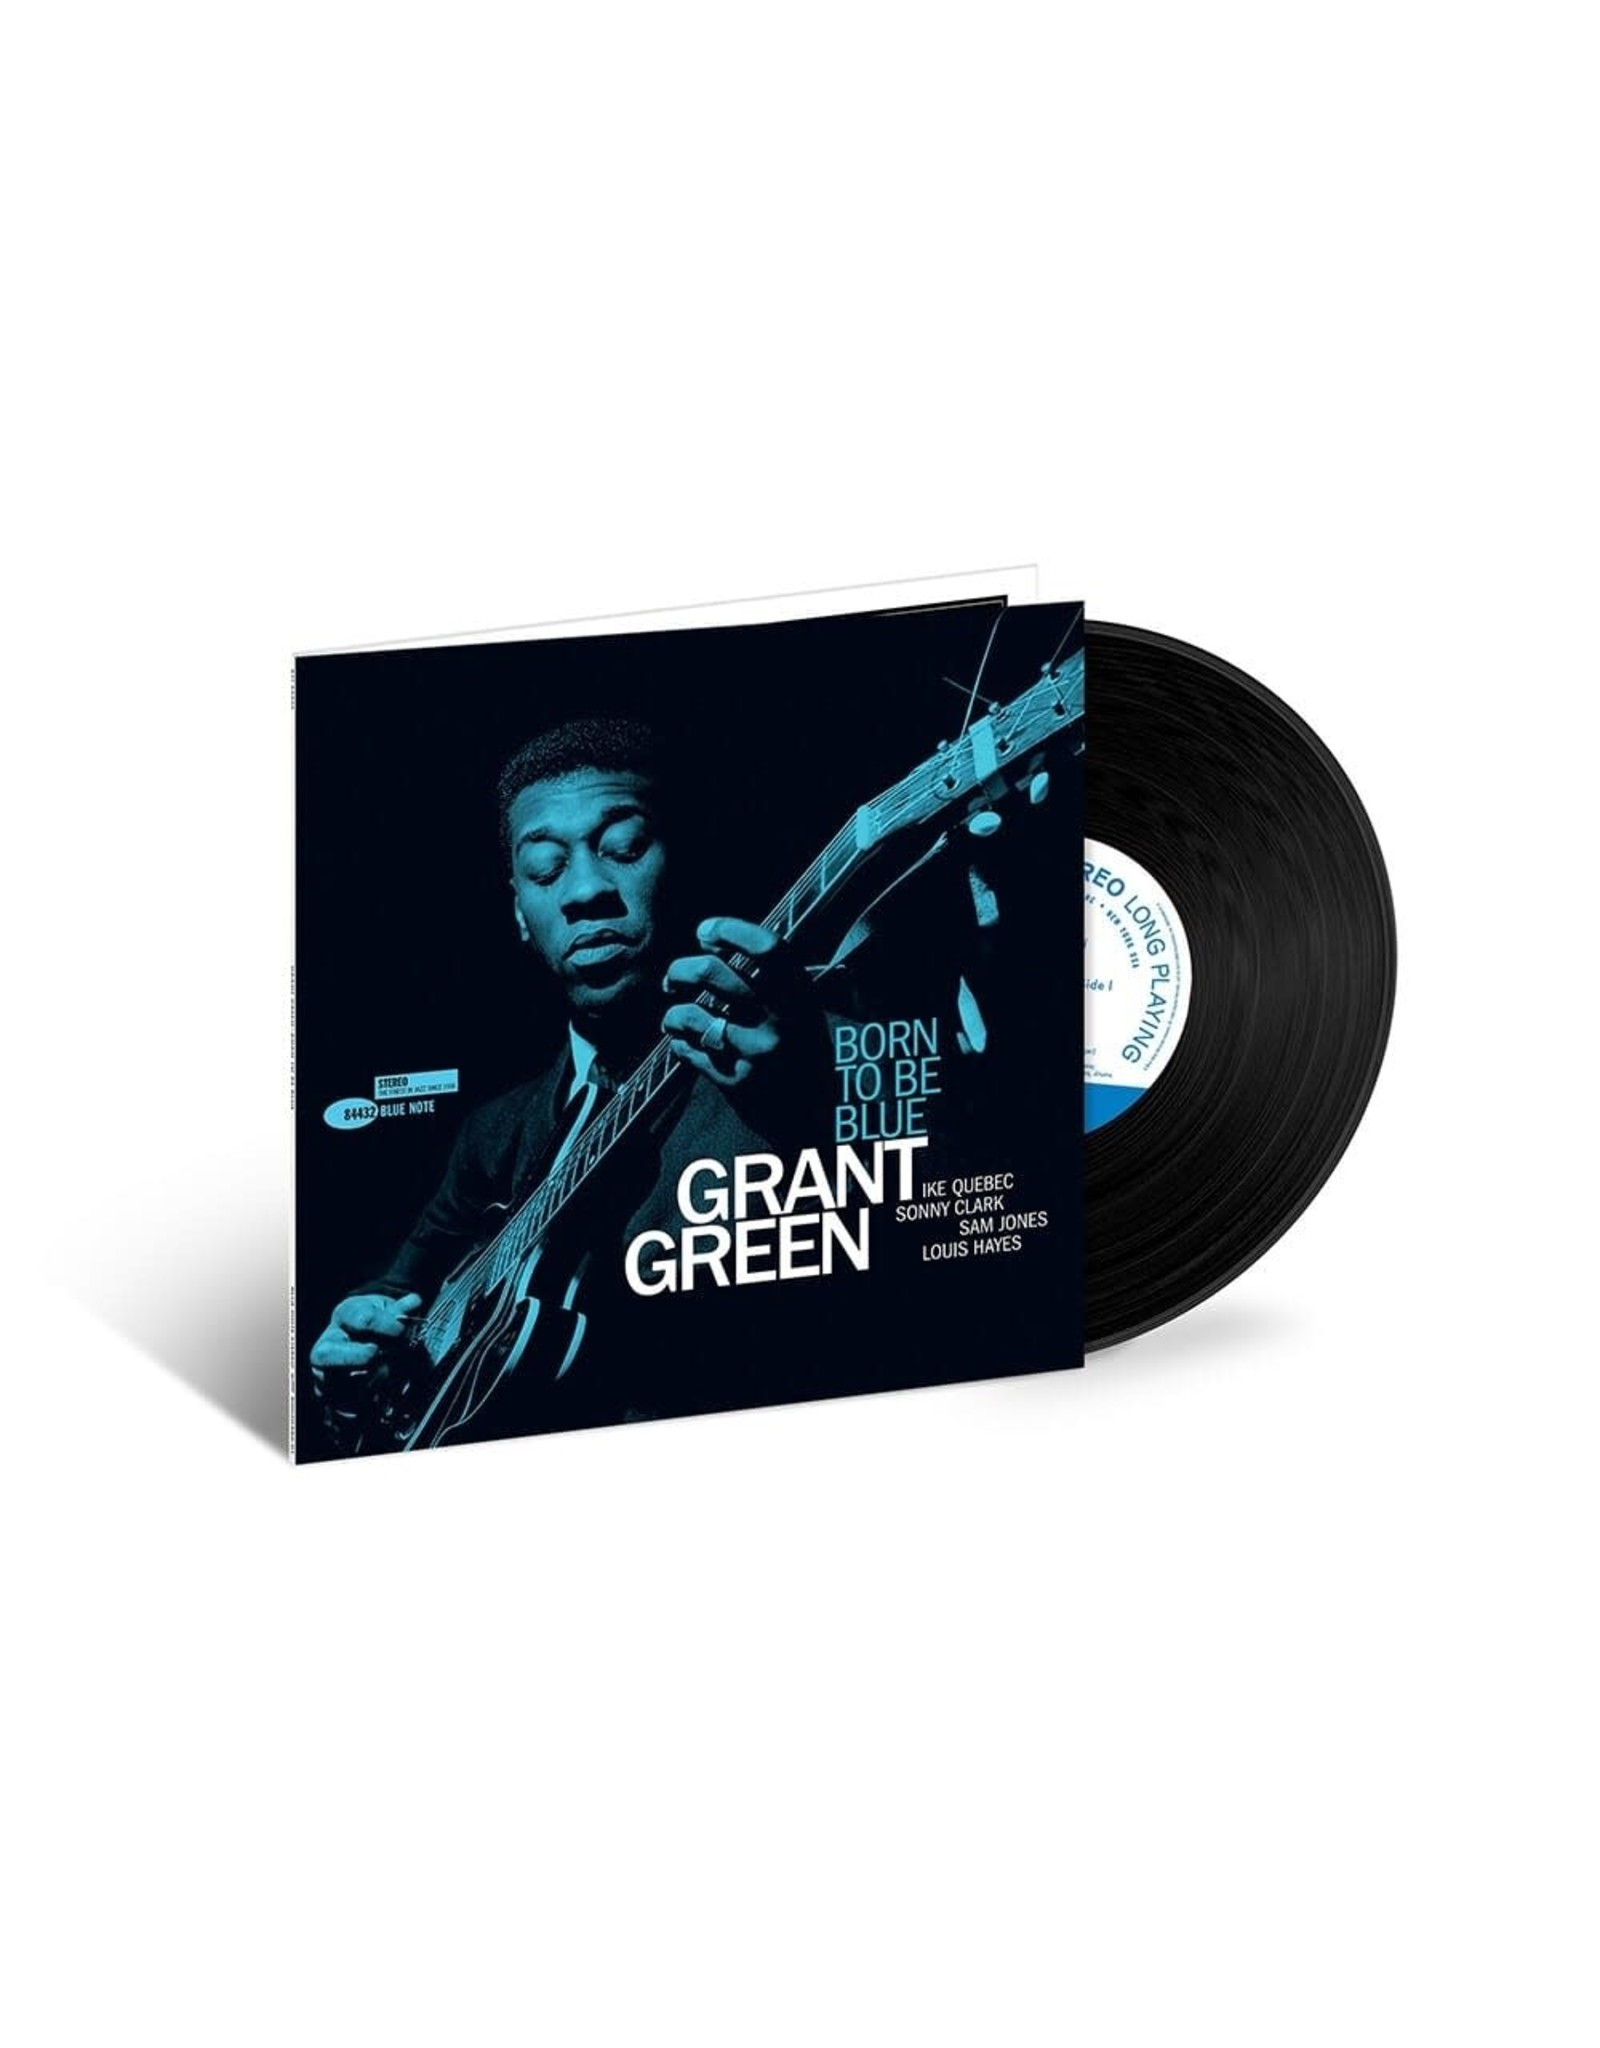 Blue Note Green, Grant: Born to Be Blue (Tone Poet Series) LP